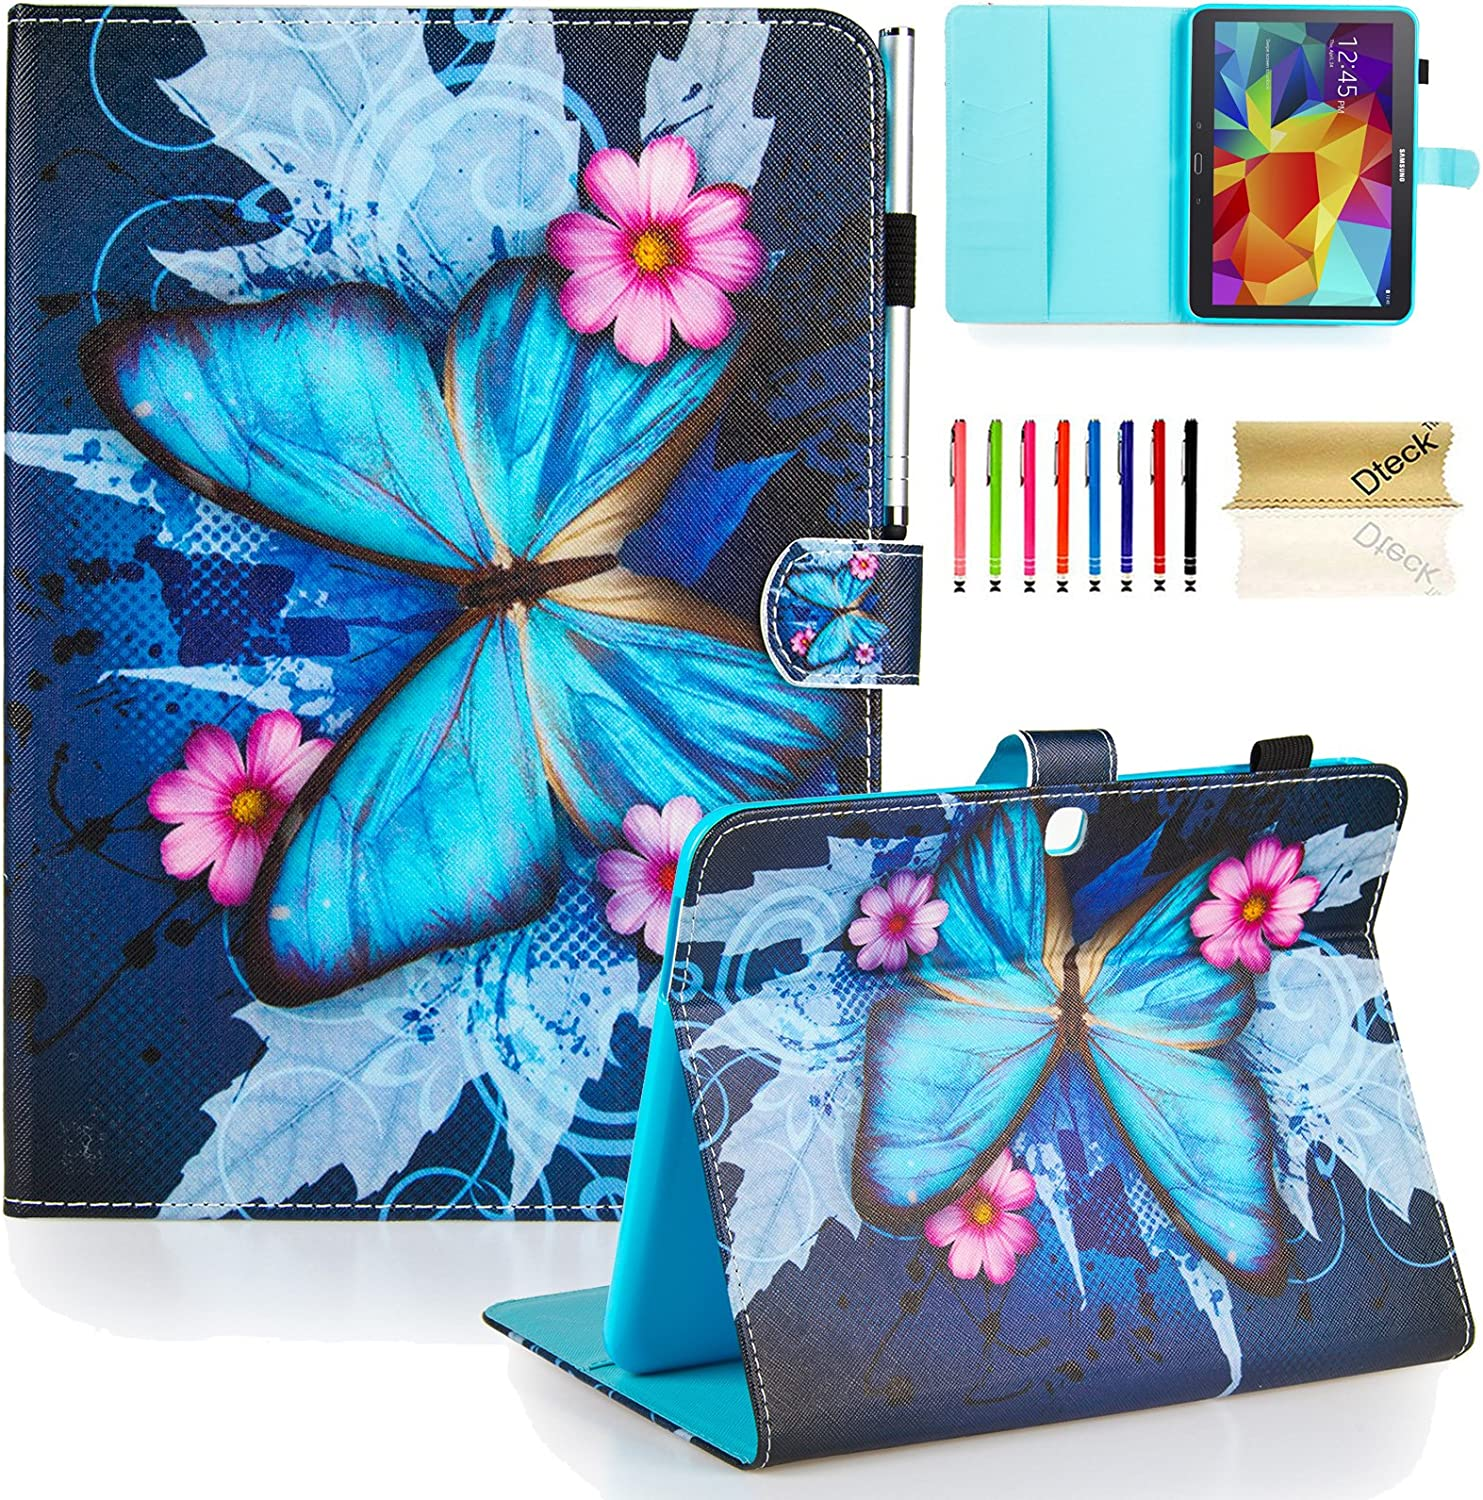 Galaxy Tab 4 10.1 Case,T530 Case,Dteck(TM) Slim Flip Stand Case with Cards Slots [Auto Wake/Sleep Feature] Magnetic Smart Shell Cover for Samsung Galaxy Tab 4 10.1 SM-T530/T530/T531,Blue Butterfly